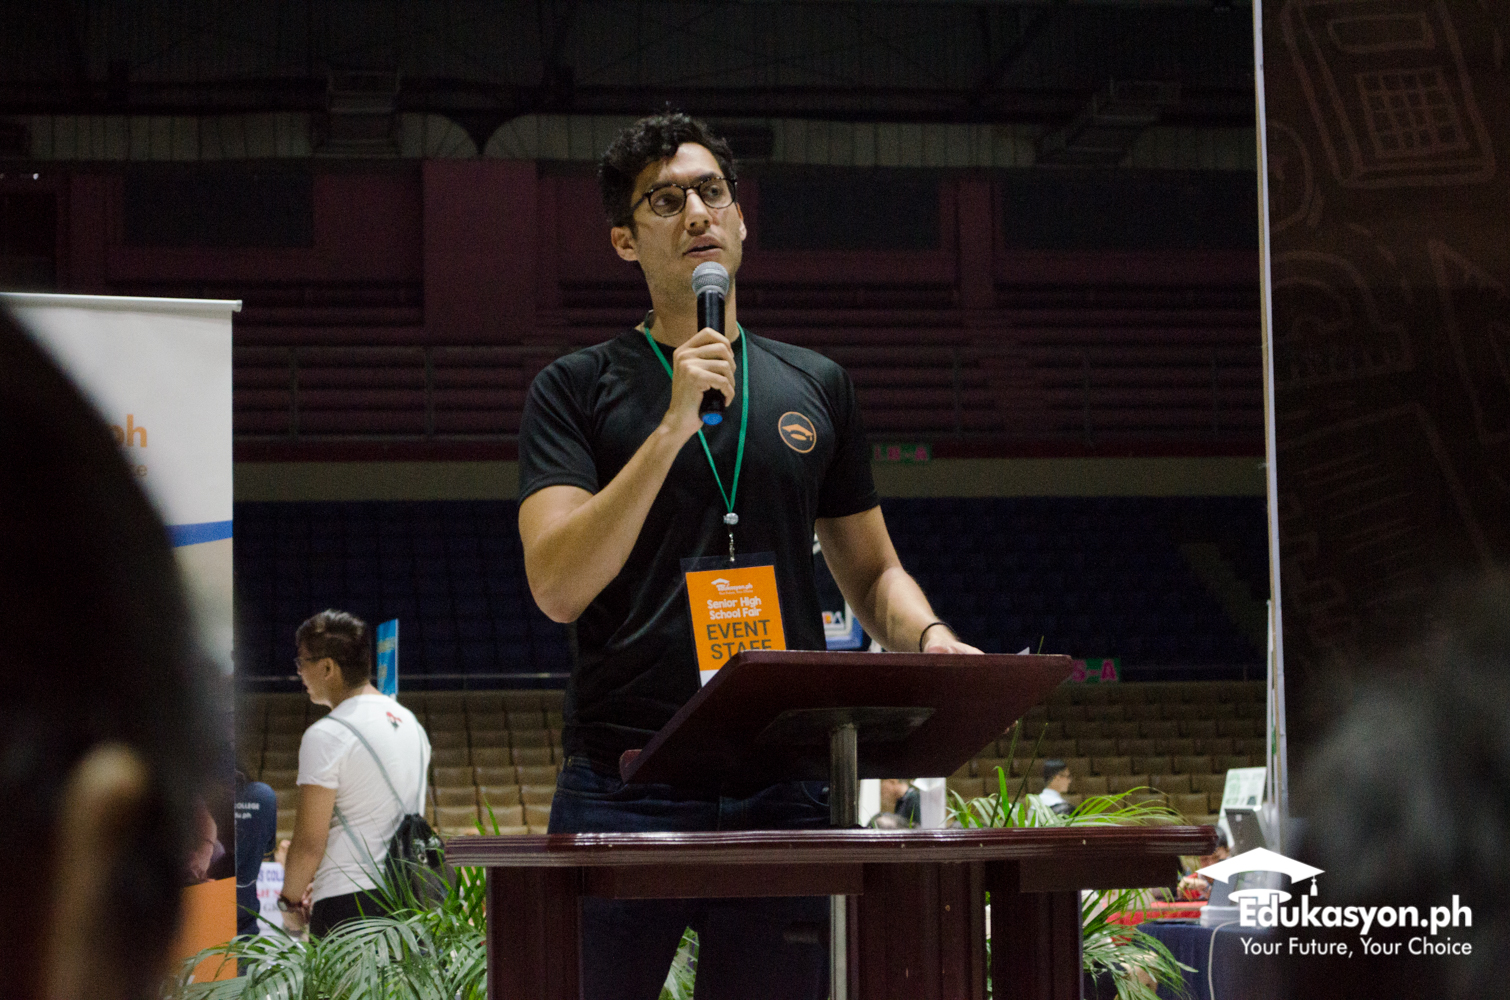 Edukasyon.ph CEO and co-founder Henry Motte Munoz